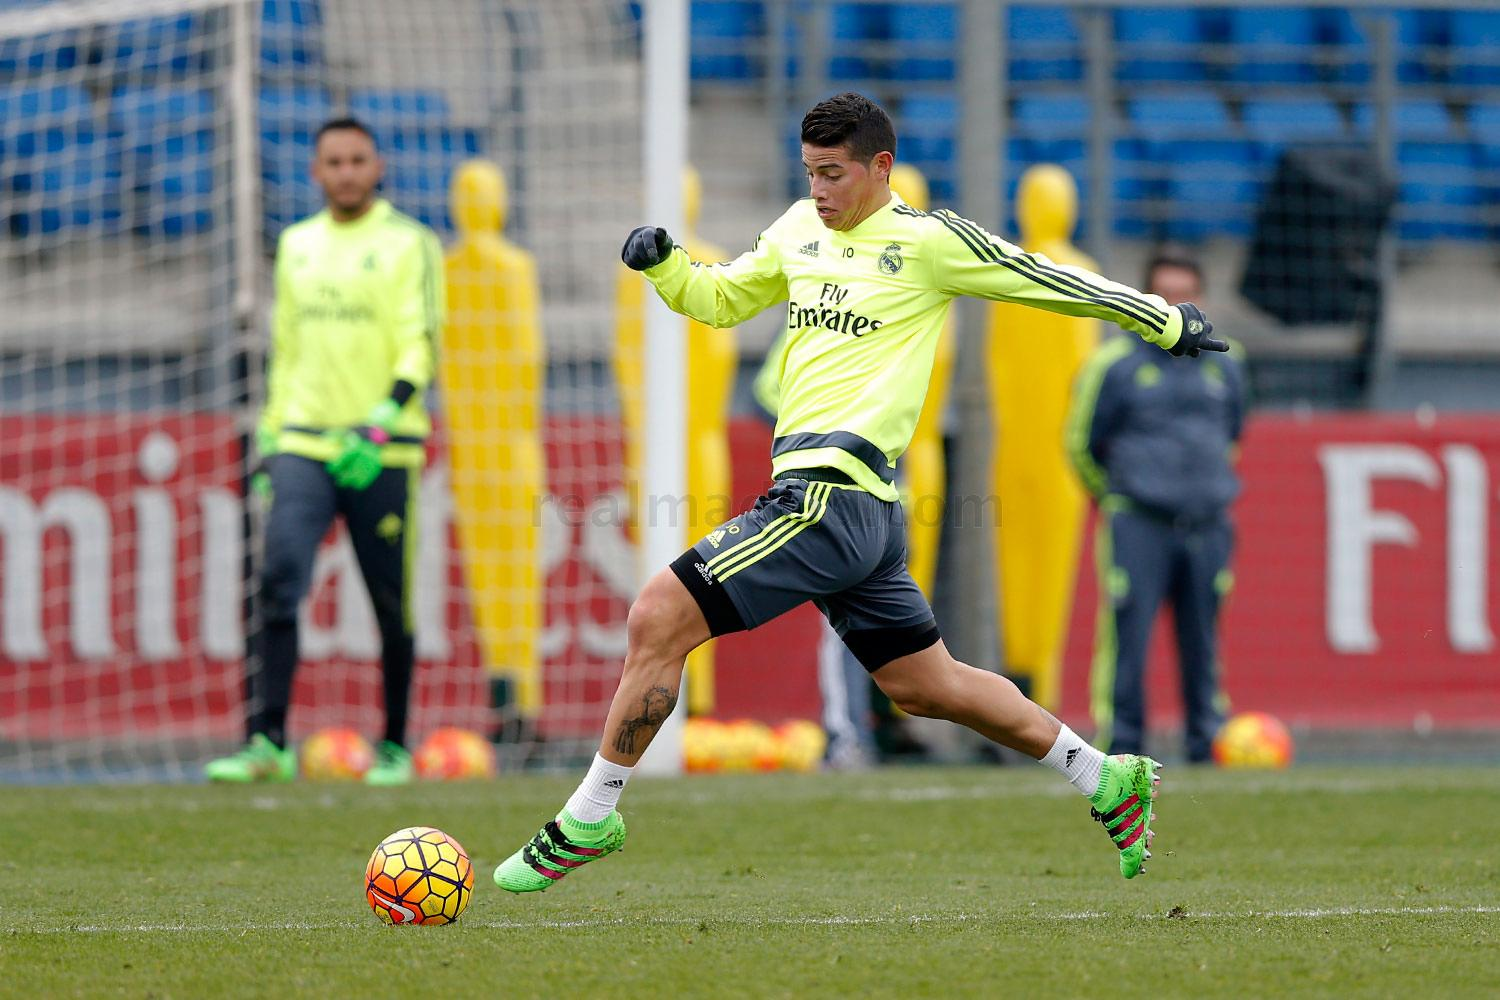 Real Madrid - Entrenamiento del Real Madrid - 06-02-2016